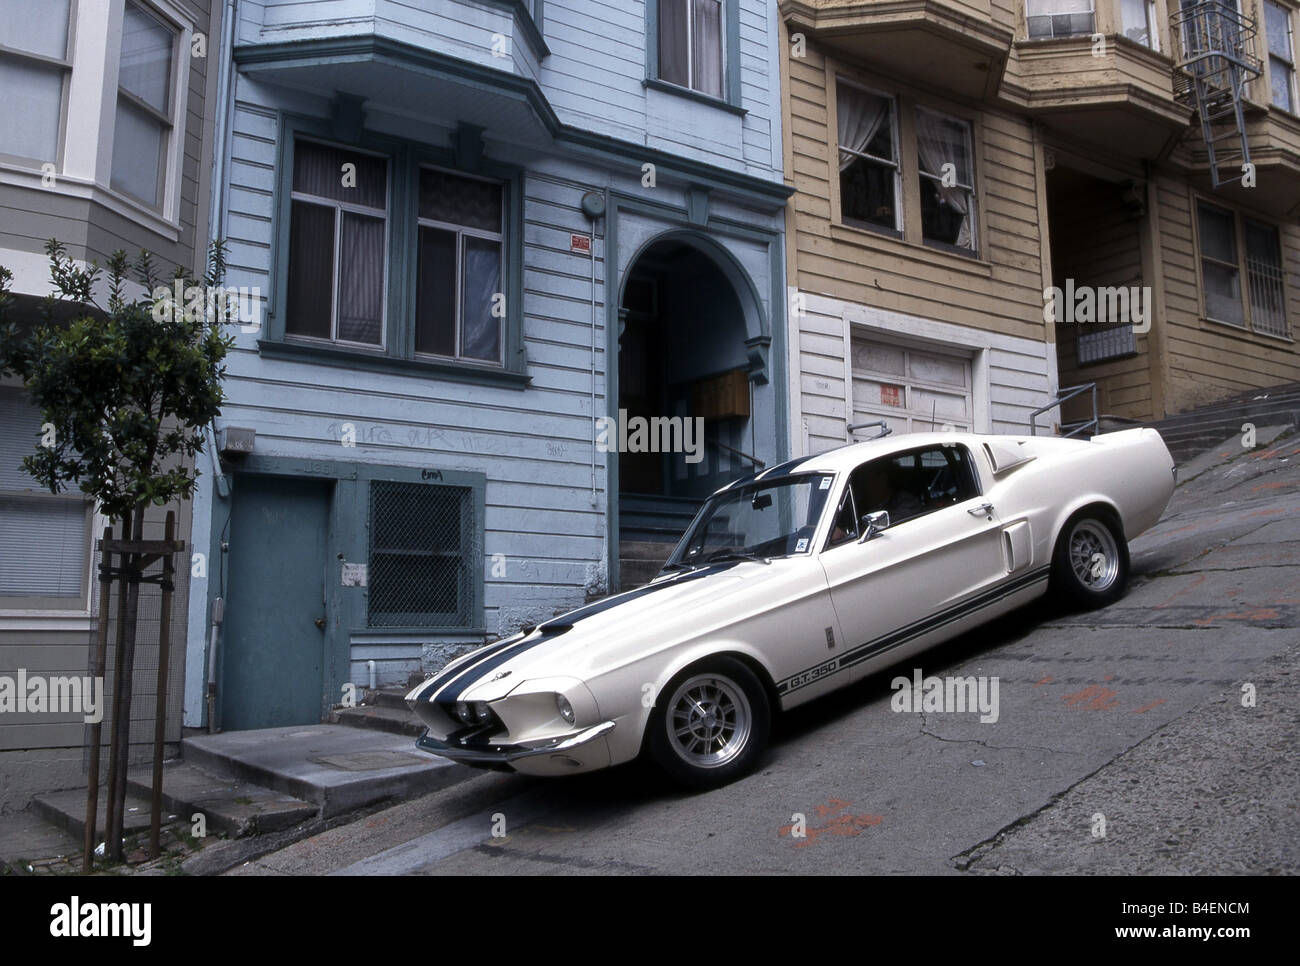 car ford mustang shelby gt model year 1967 coup coupe stock photo 19993140 alamy. Black Bedroom Furniture Sets. Home Design Ideas